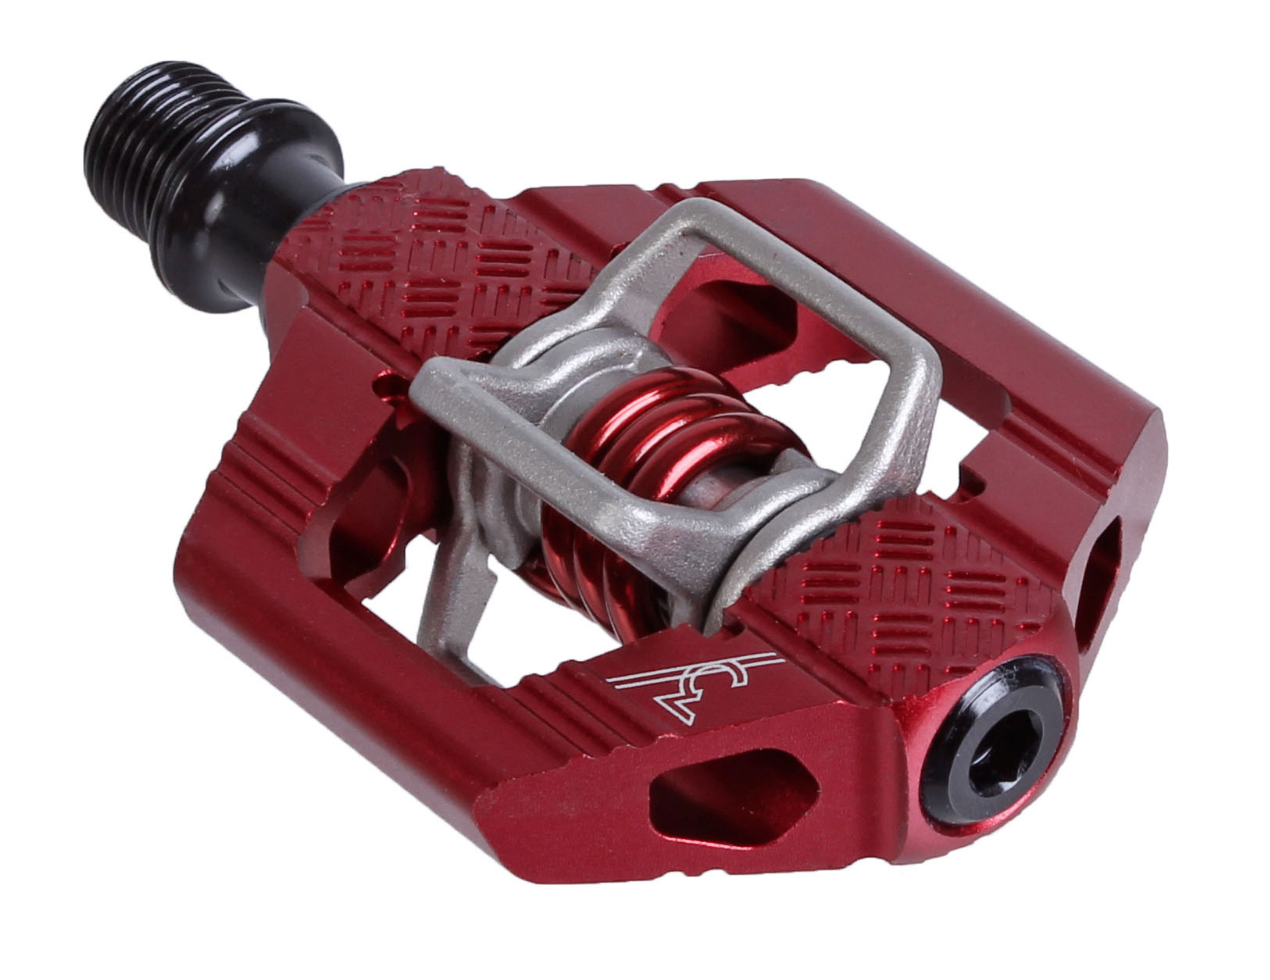 Crank Brothers 2018 Candy 3 MTB Fahrrad Fahrrad Pedals with Cleats - Dark rot